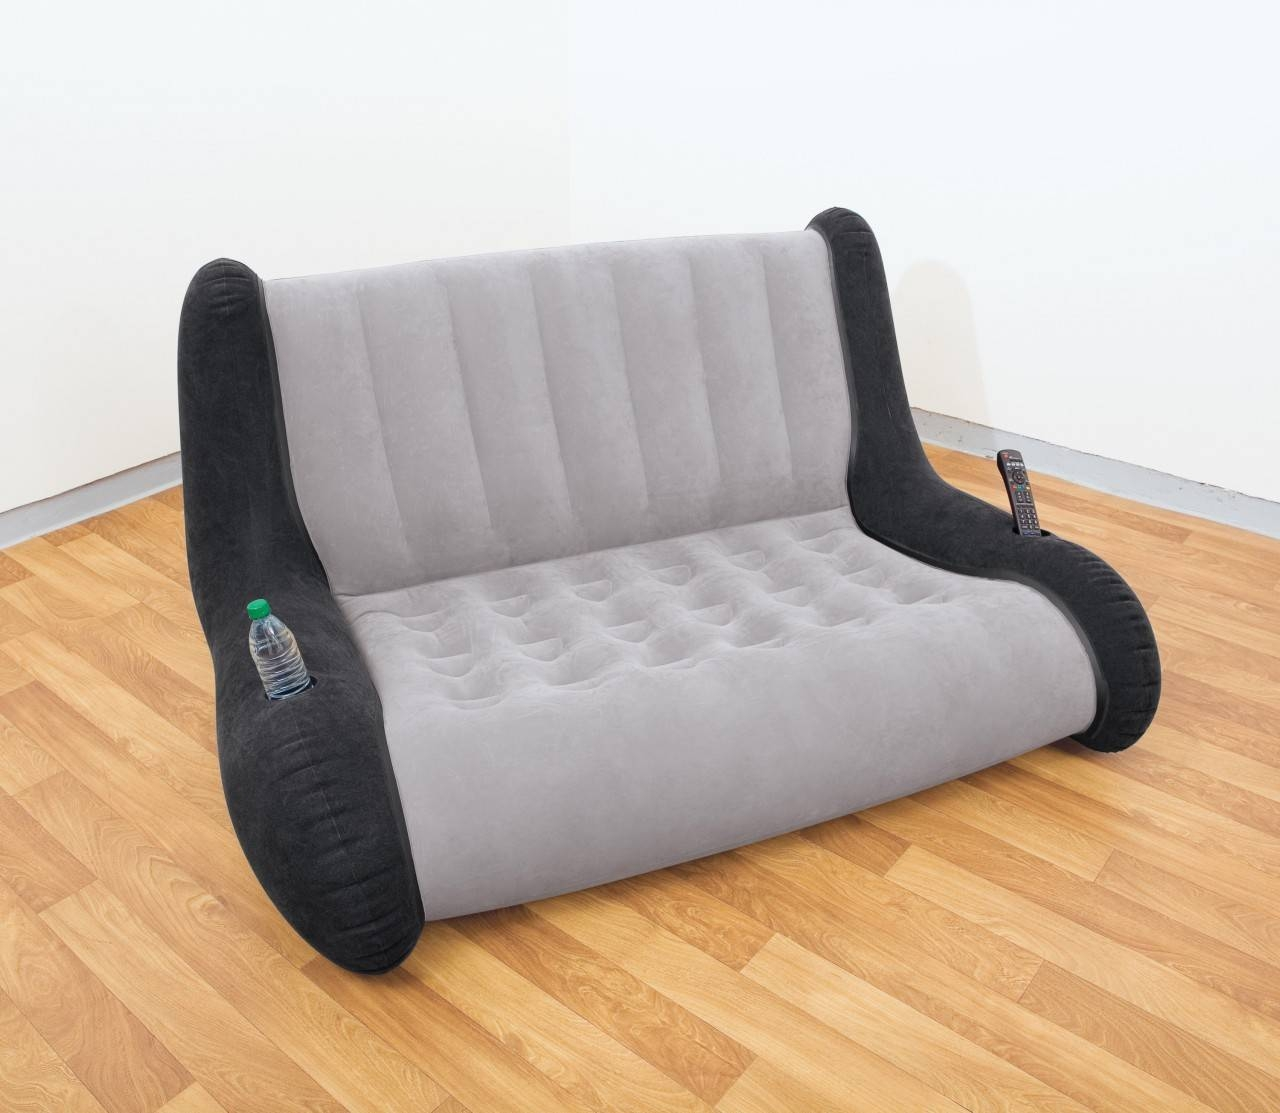 Intex Inflatable Sofa Lounge inside Intex Inflatable Sofas (Image 12 of 15)